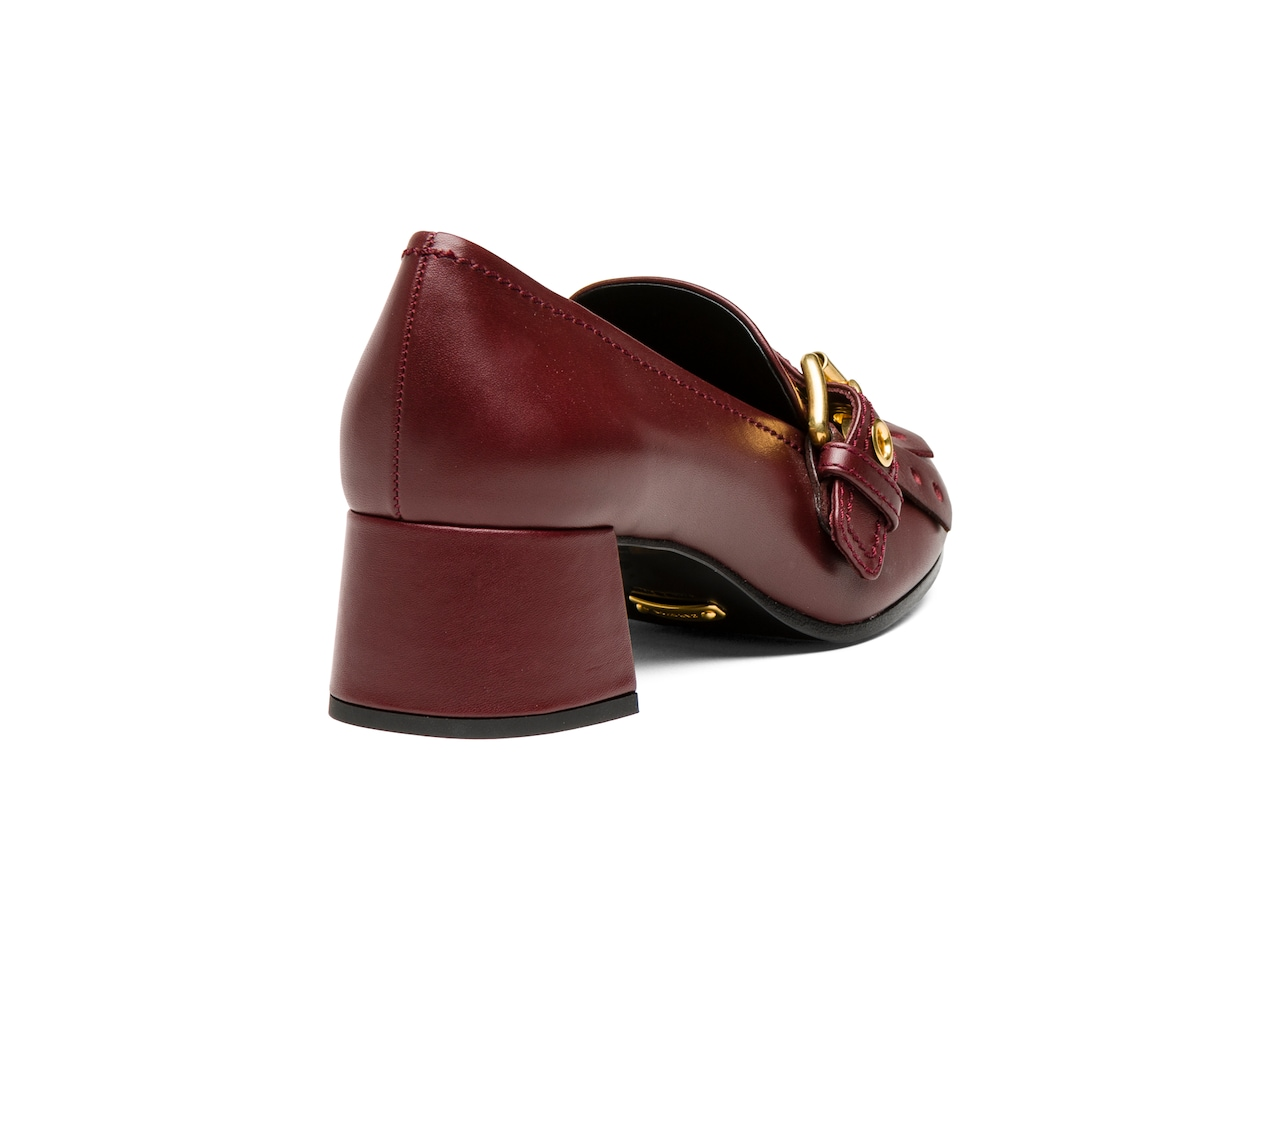 MOCASSINS CALF LEATHER